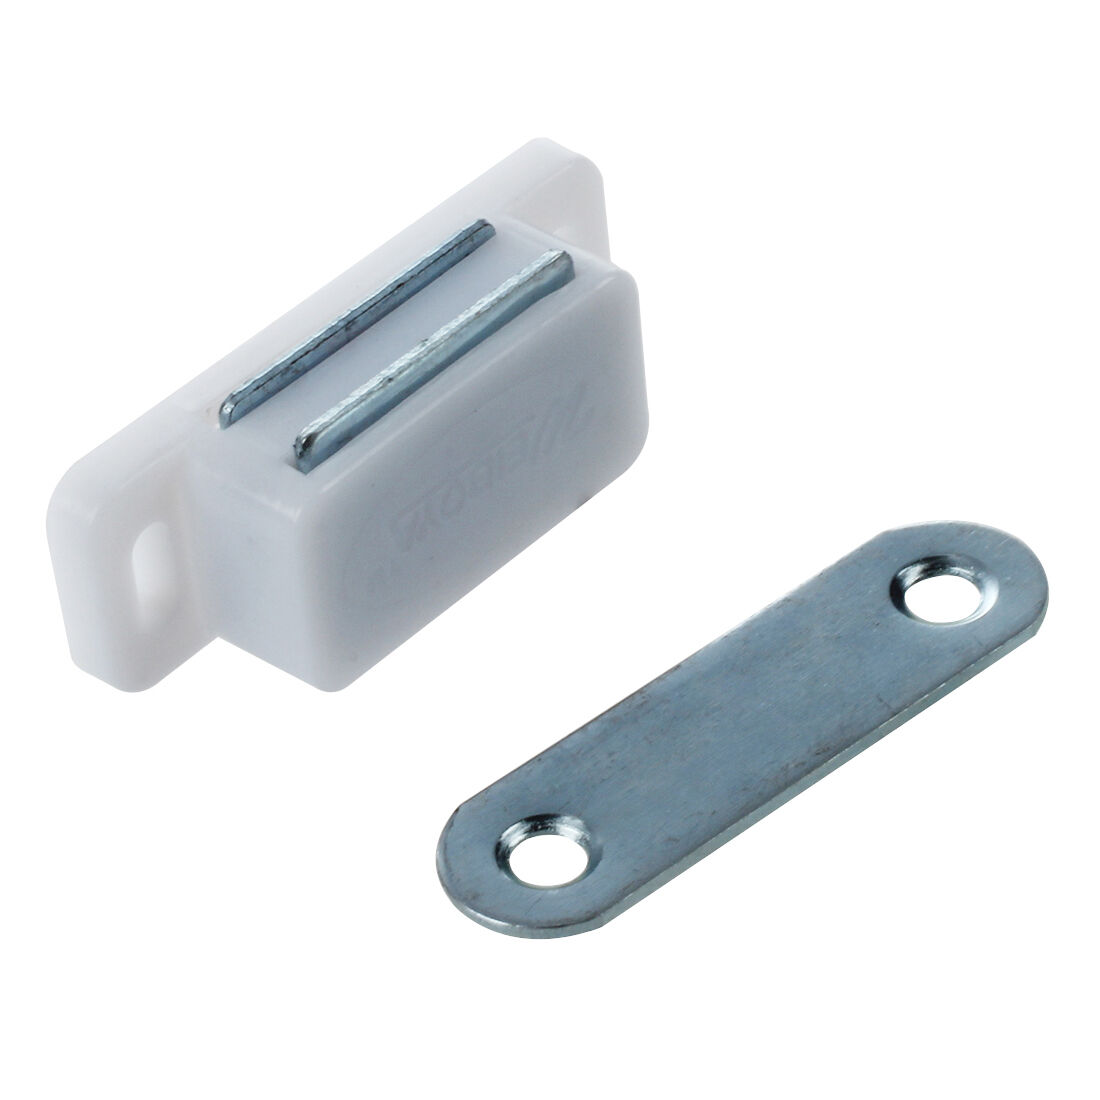 ultra door cabinet magnetic strong with for latch cupboard product screws thin furniture home catch